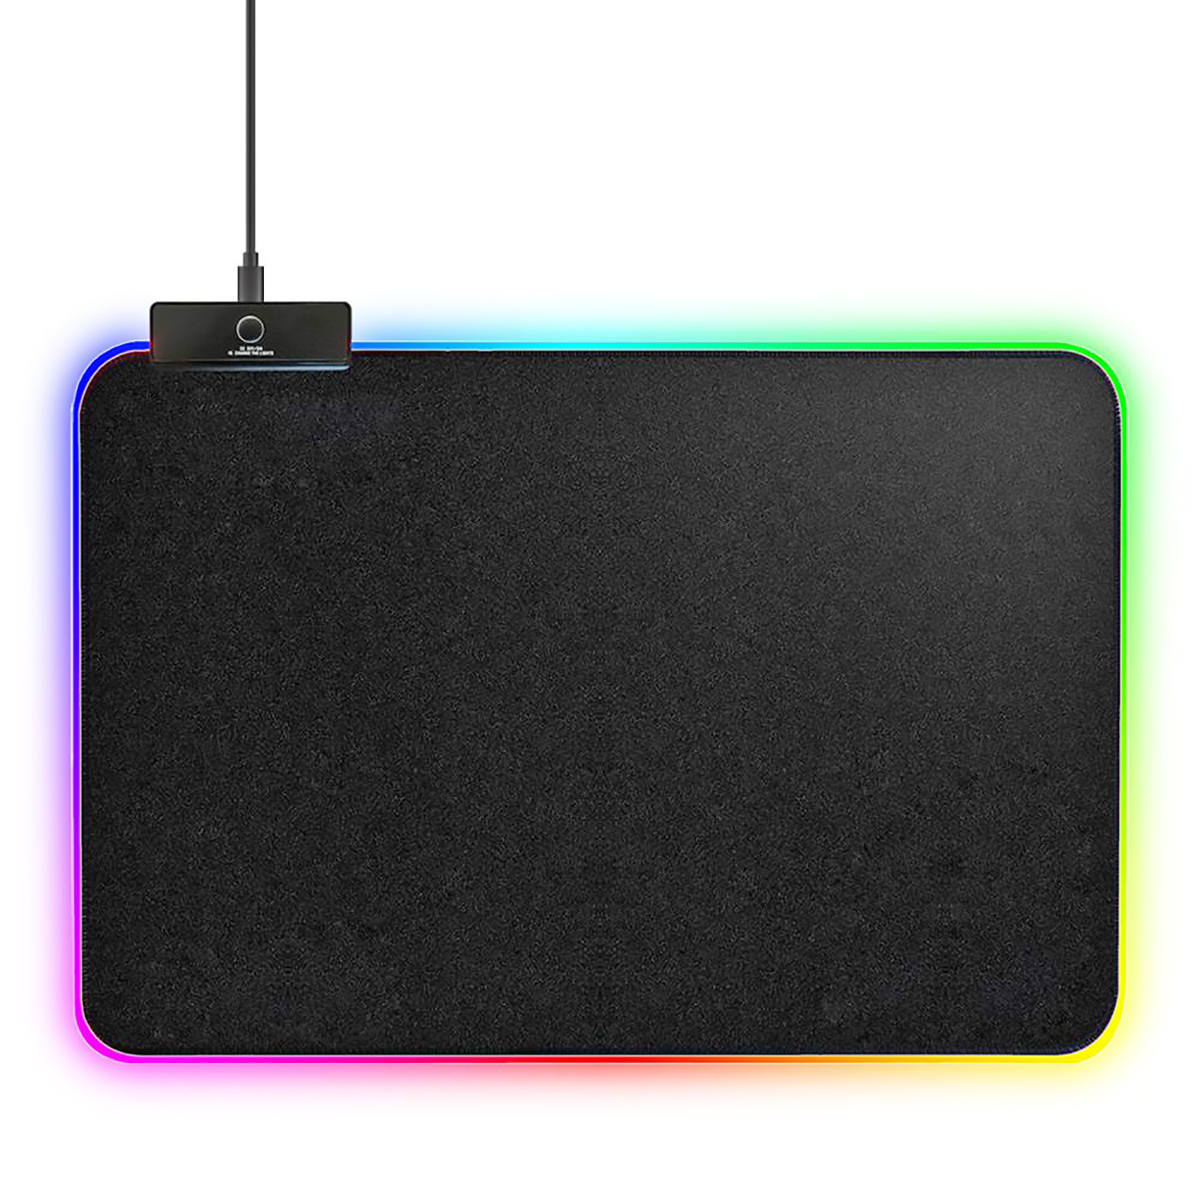 Mouse Pad Gamer com Borda de LED 350x250x3mm 14 Modos Espectro Backlighting em 7 Cores USB Power Exbom MP-LED2535